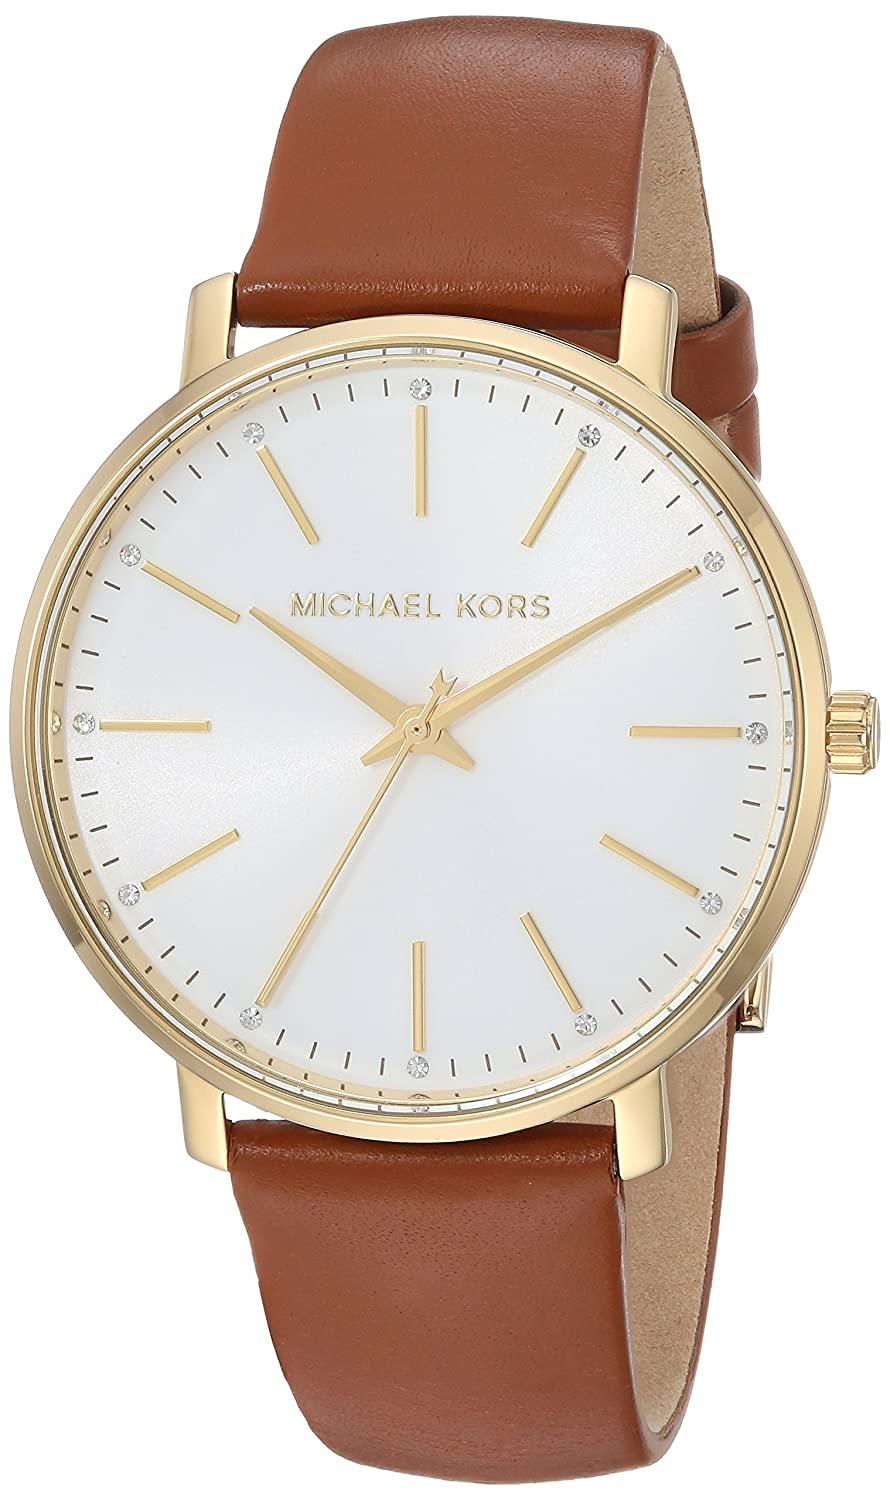 CDM product Michael Kors Watches Womens Gold-Tone and Luggage Leather Pyper Watch big image